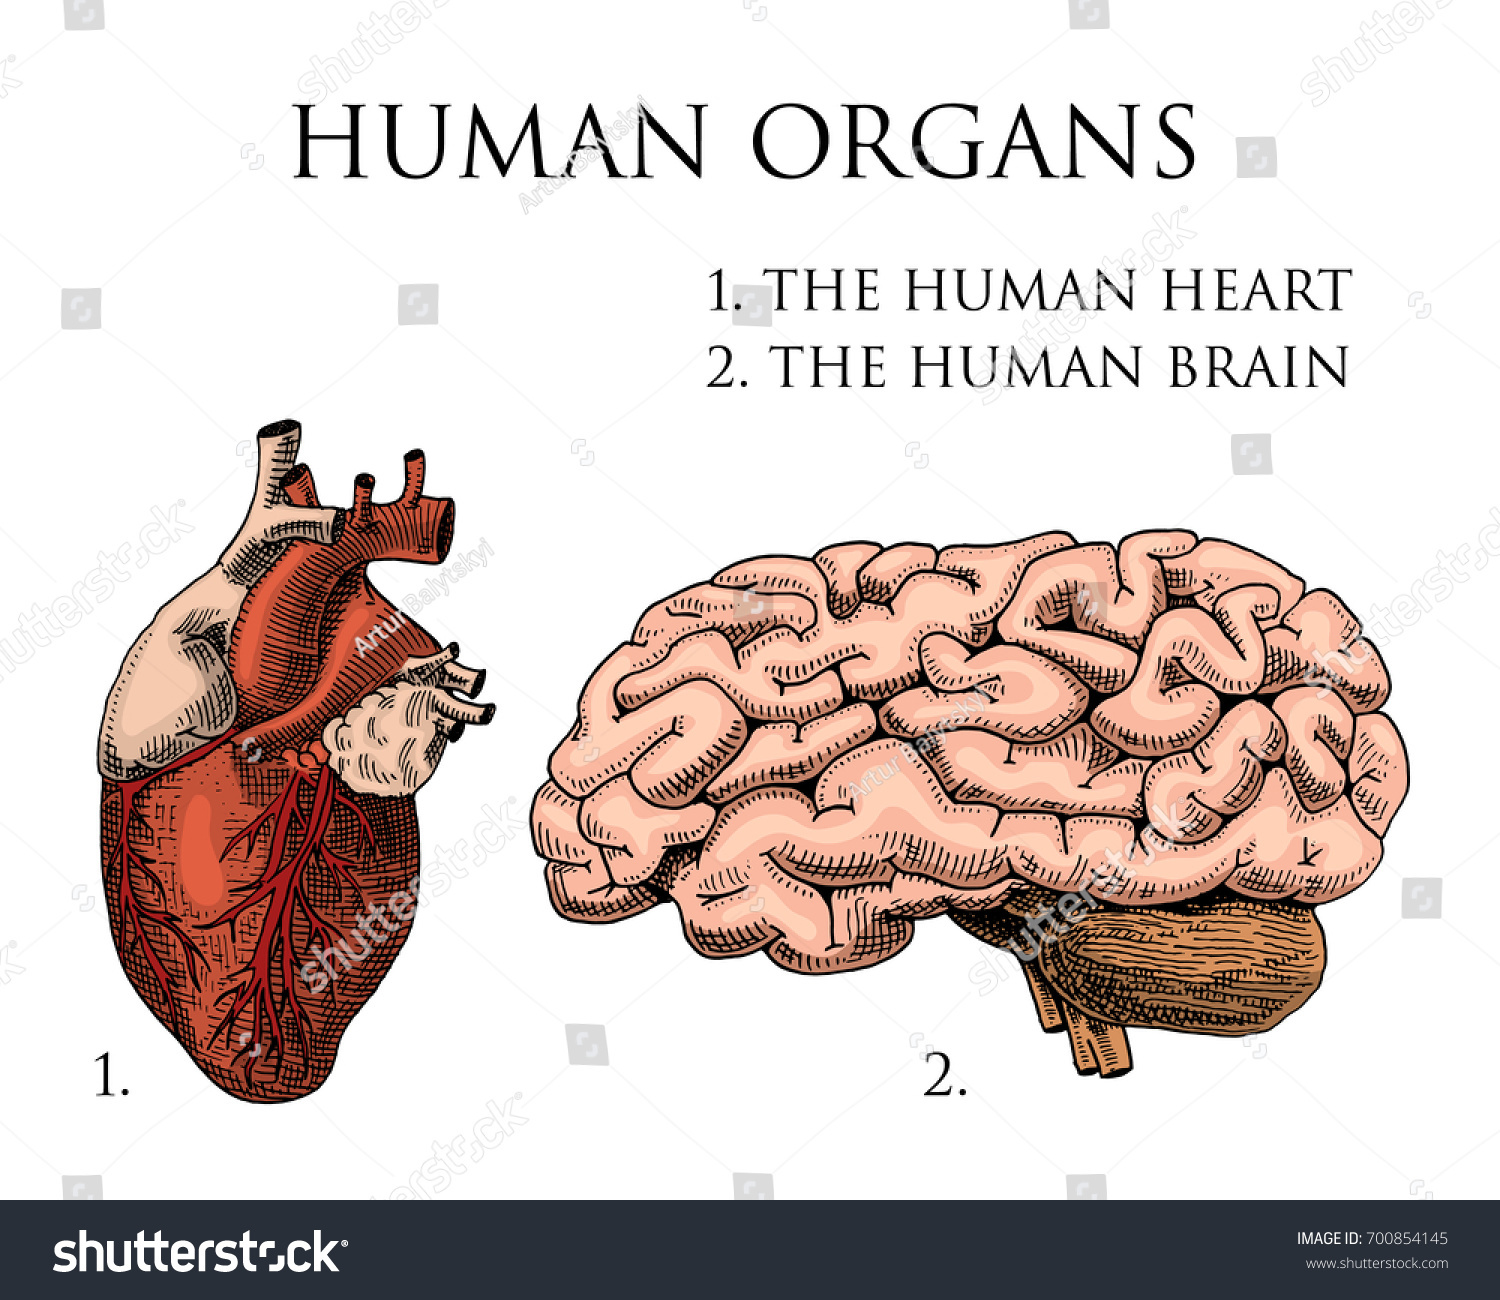 Human Biology Organs Anatomy Illustration Engraved Stock Vector ...